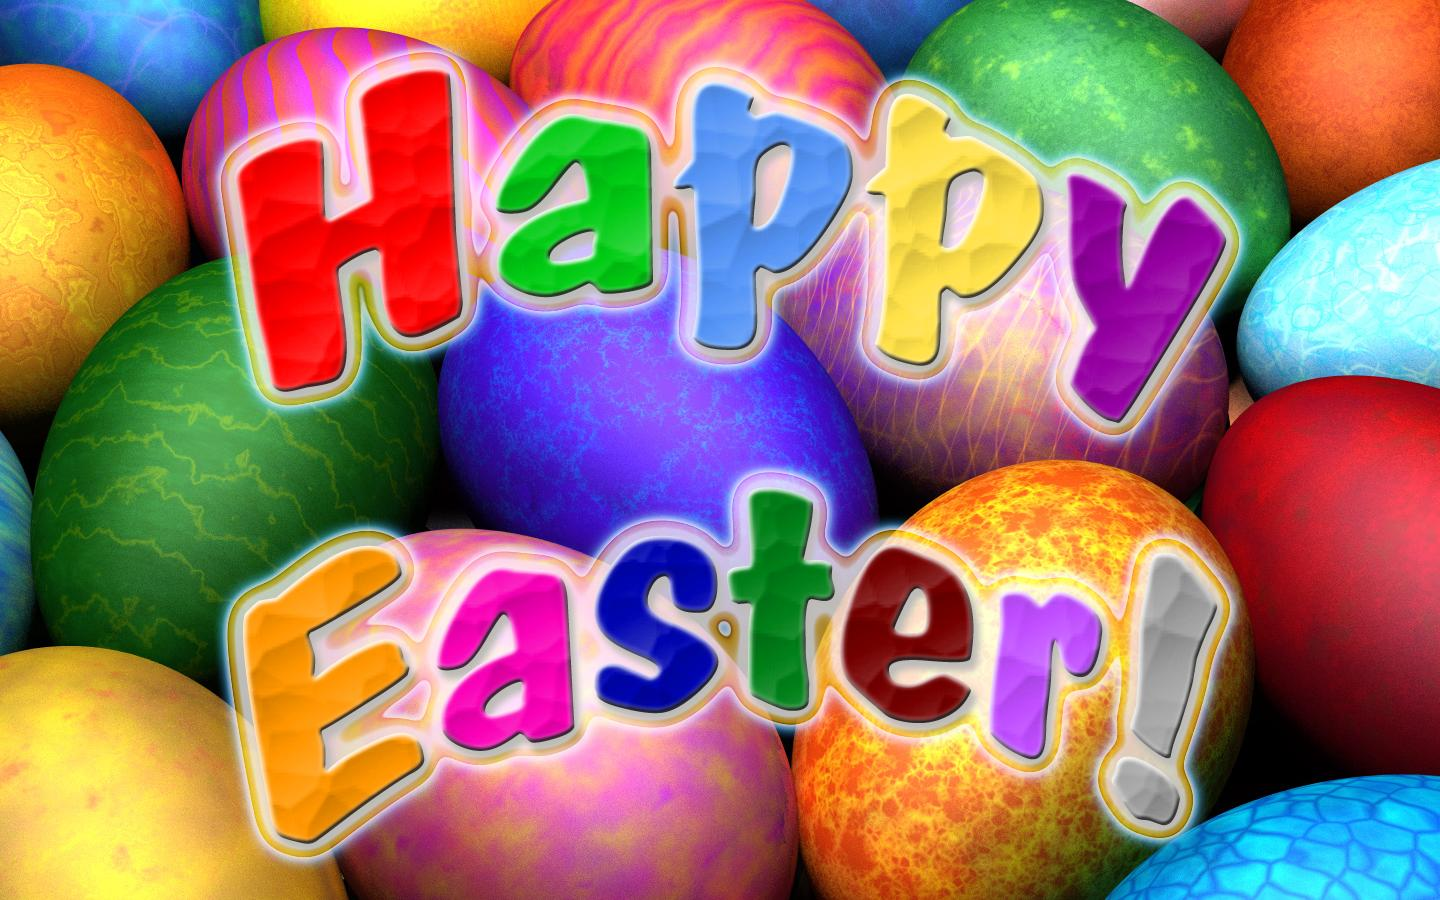 Free Christian Wallpapers Top 7 Happy Easter Wallpapers Free Download